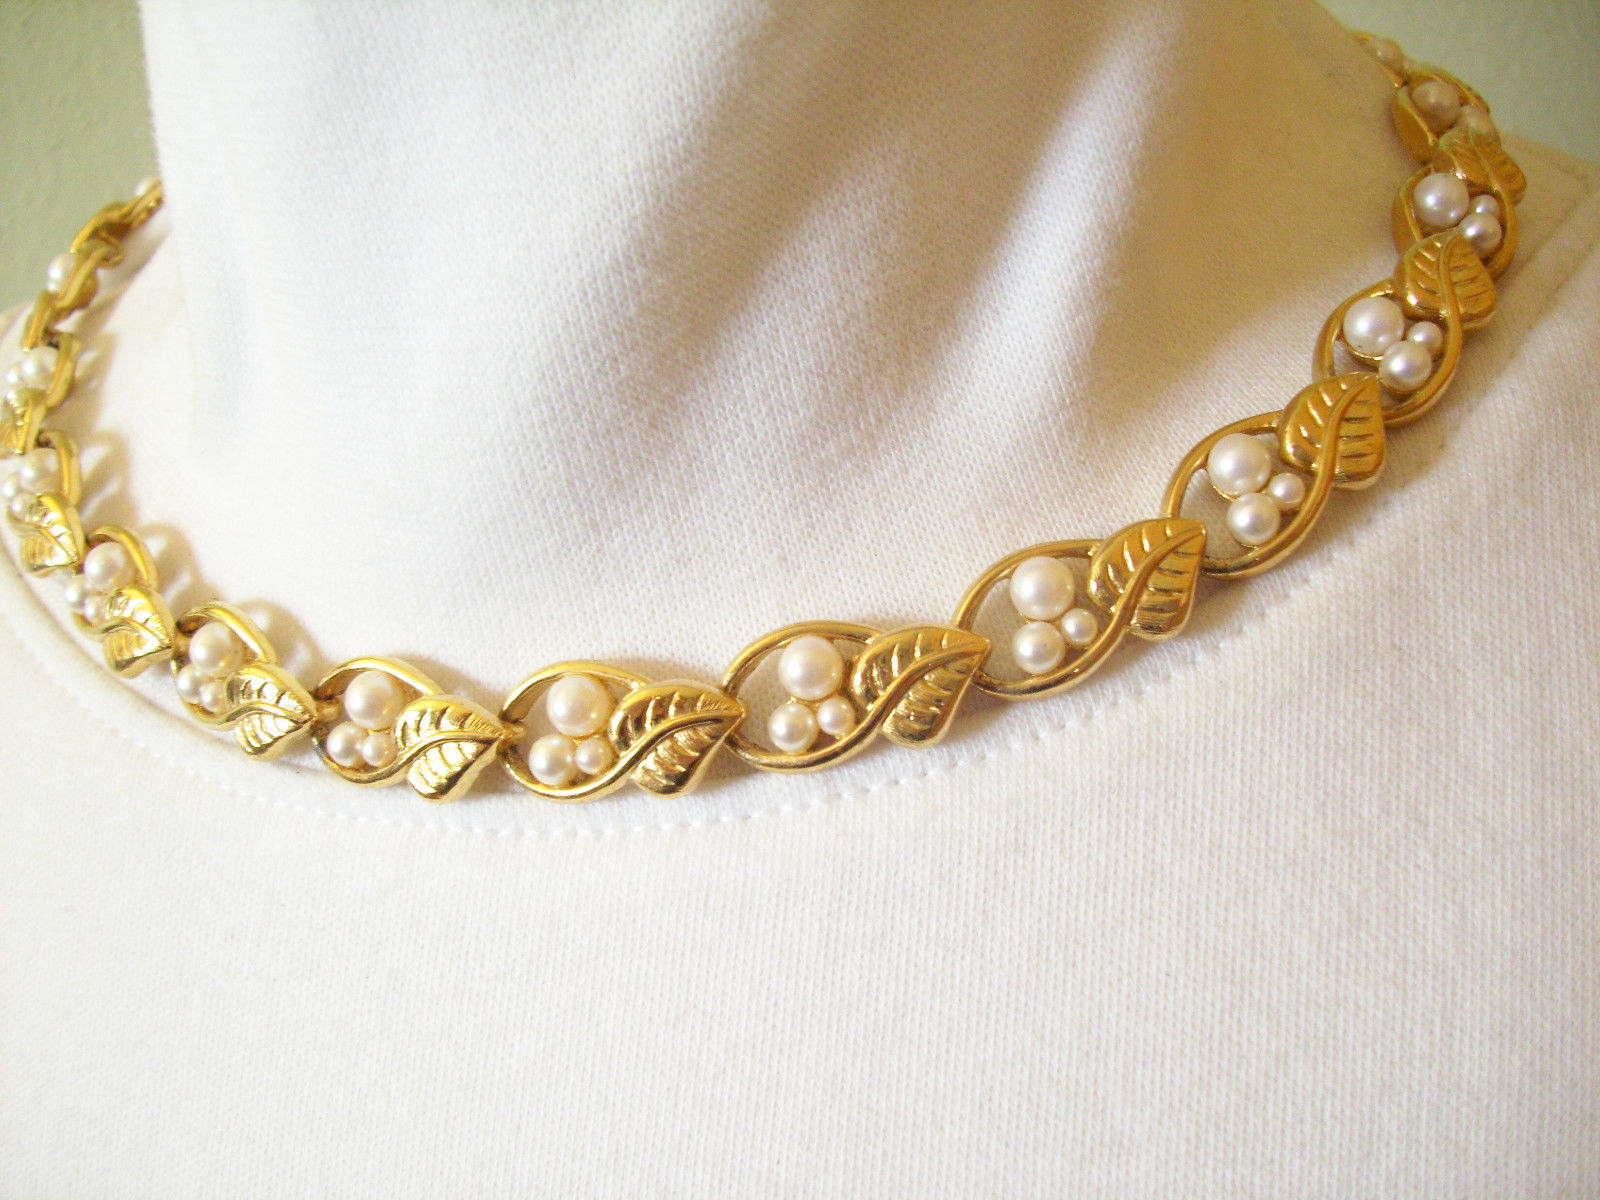 Napier Faux Pearl Gold Plated Vined Leaves Choker Necklace Vintage